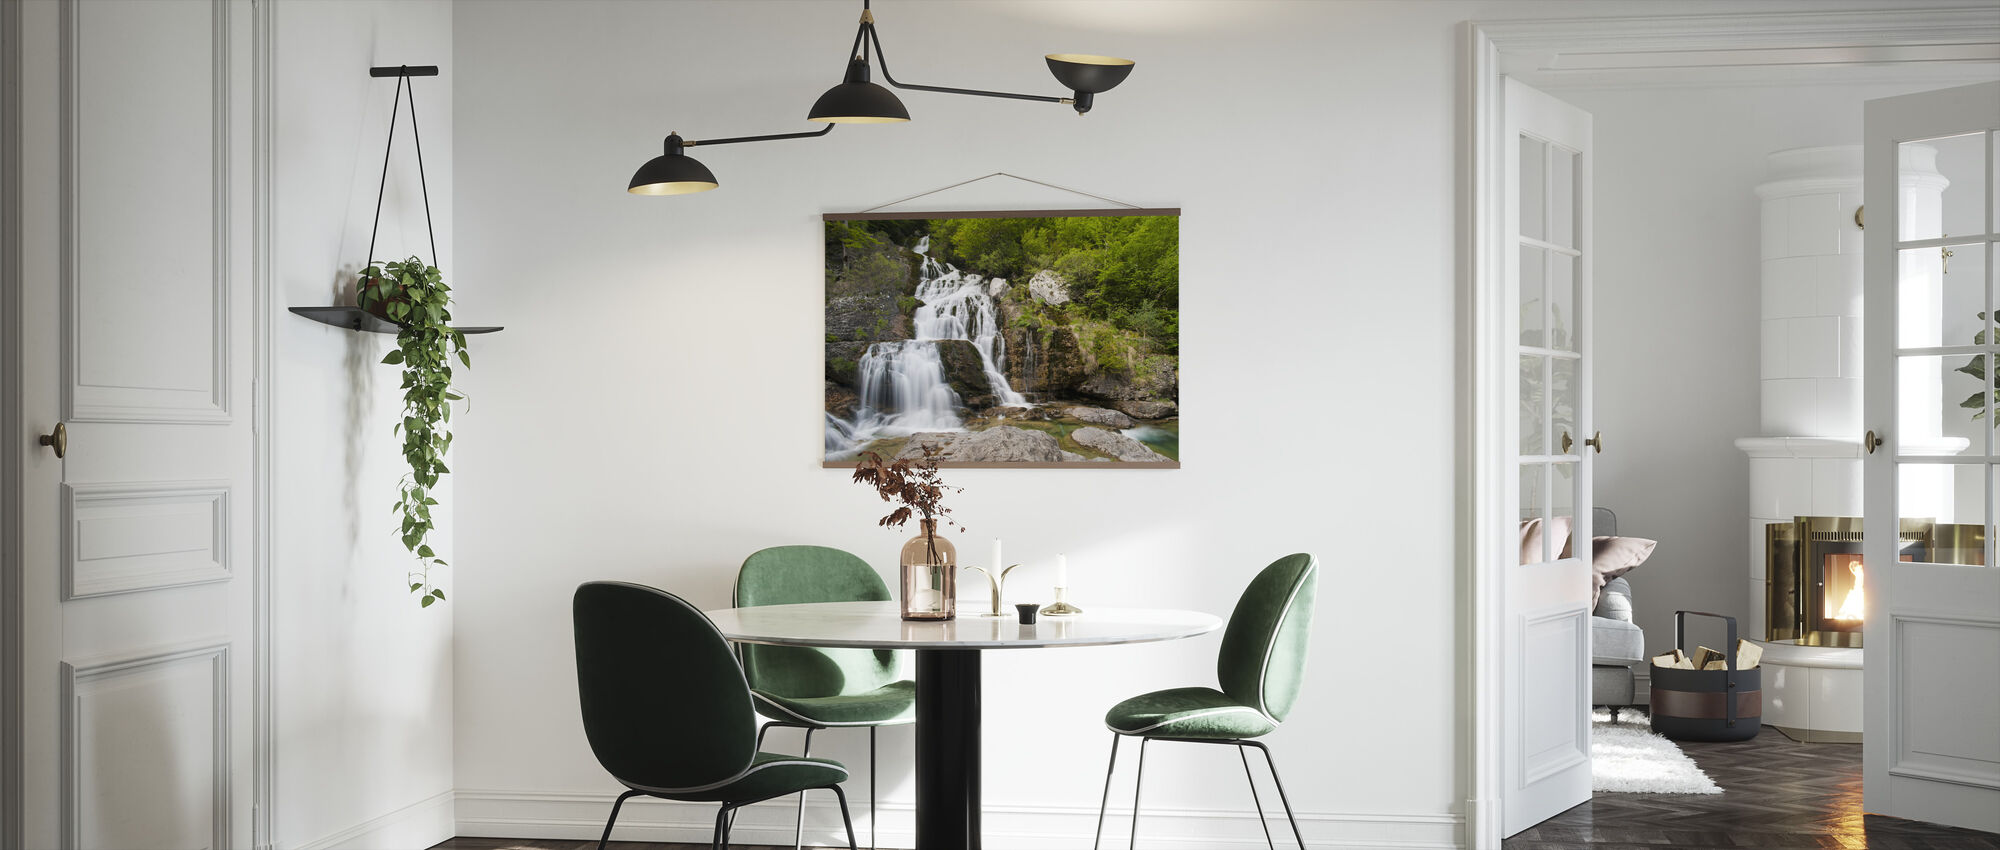 Springs of Yaga River - Poster - Kitchen